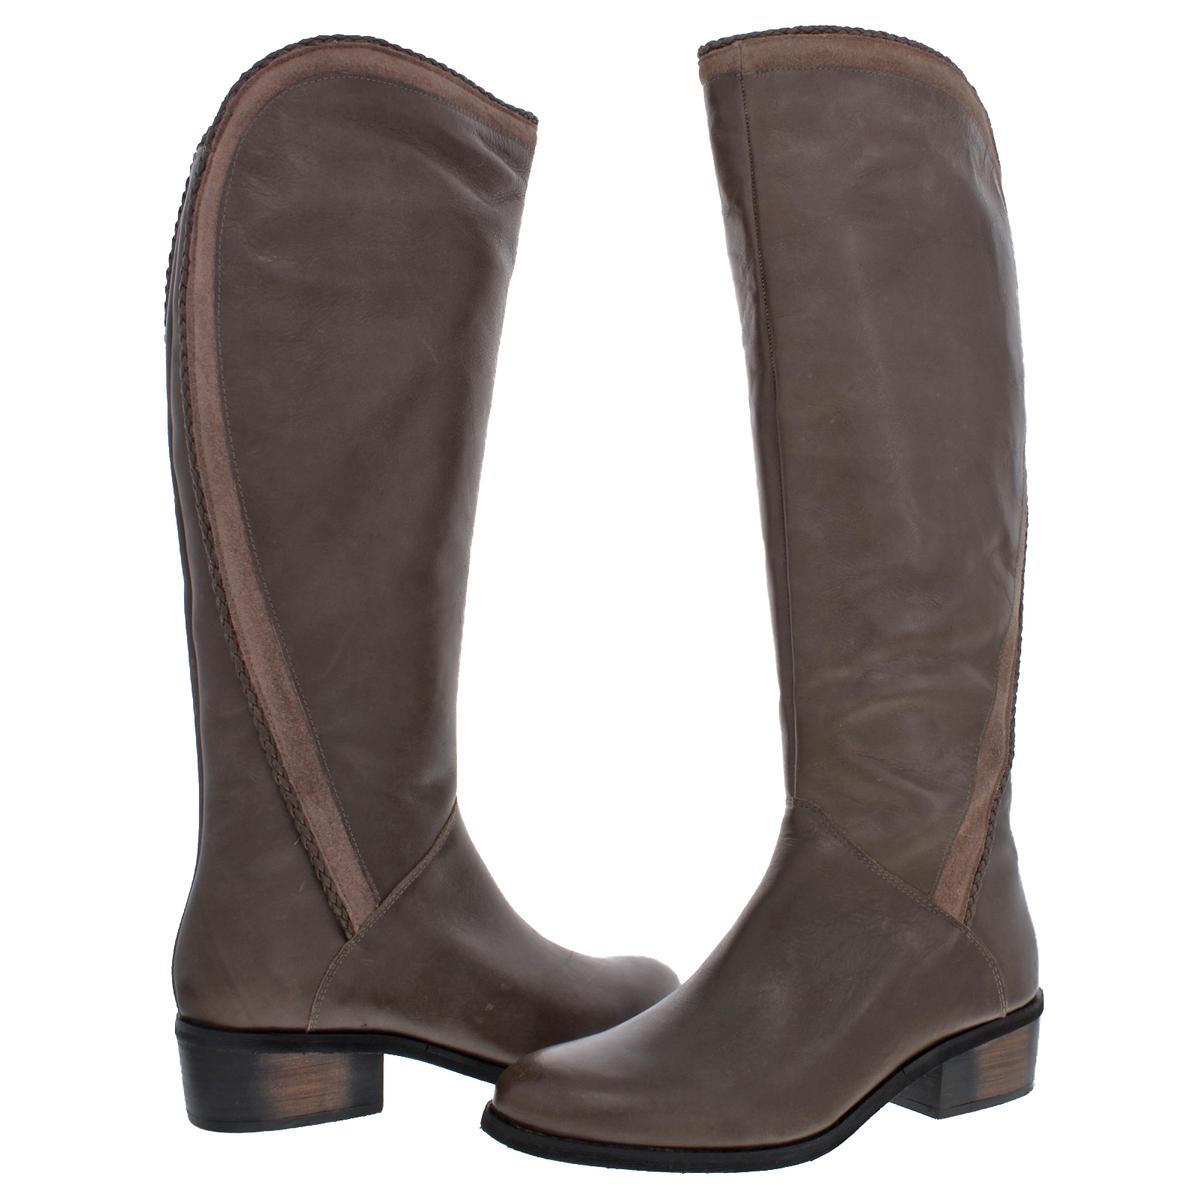 Naughty Monkey Womens Everlasting Leather Tall Riding Boots Shoes BHFO 9610